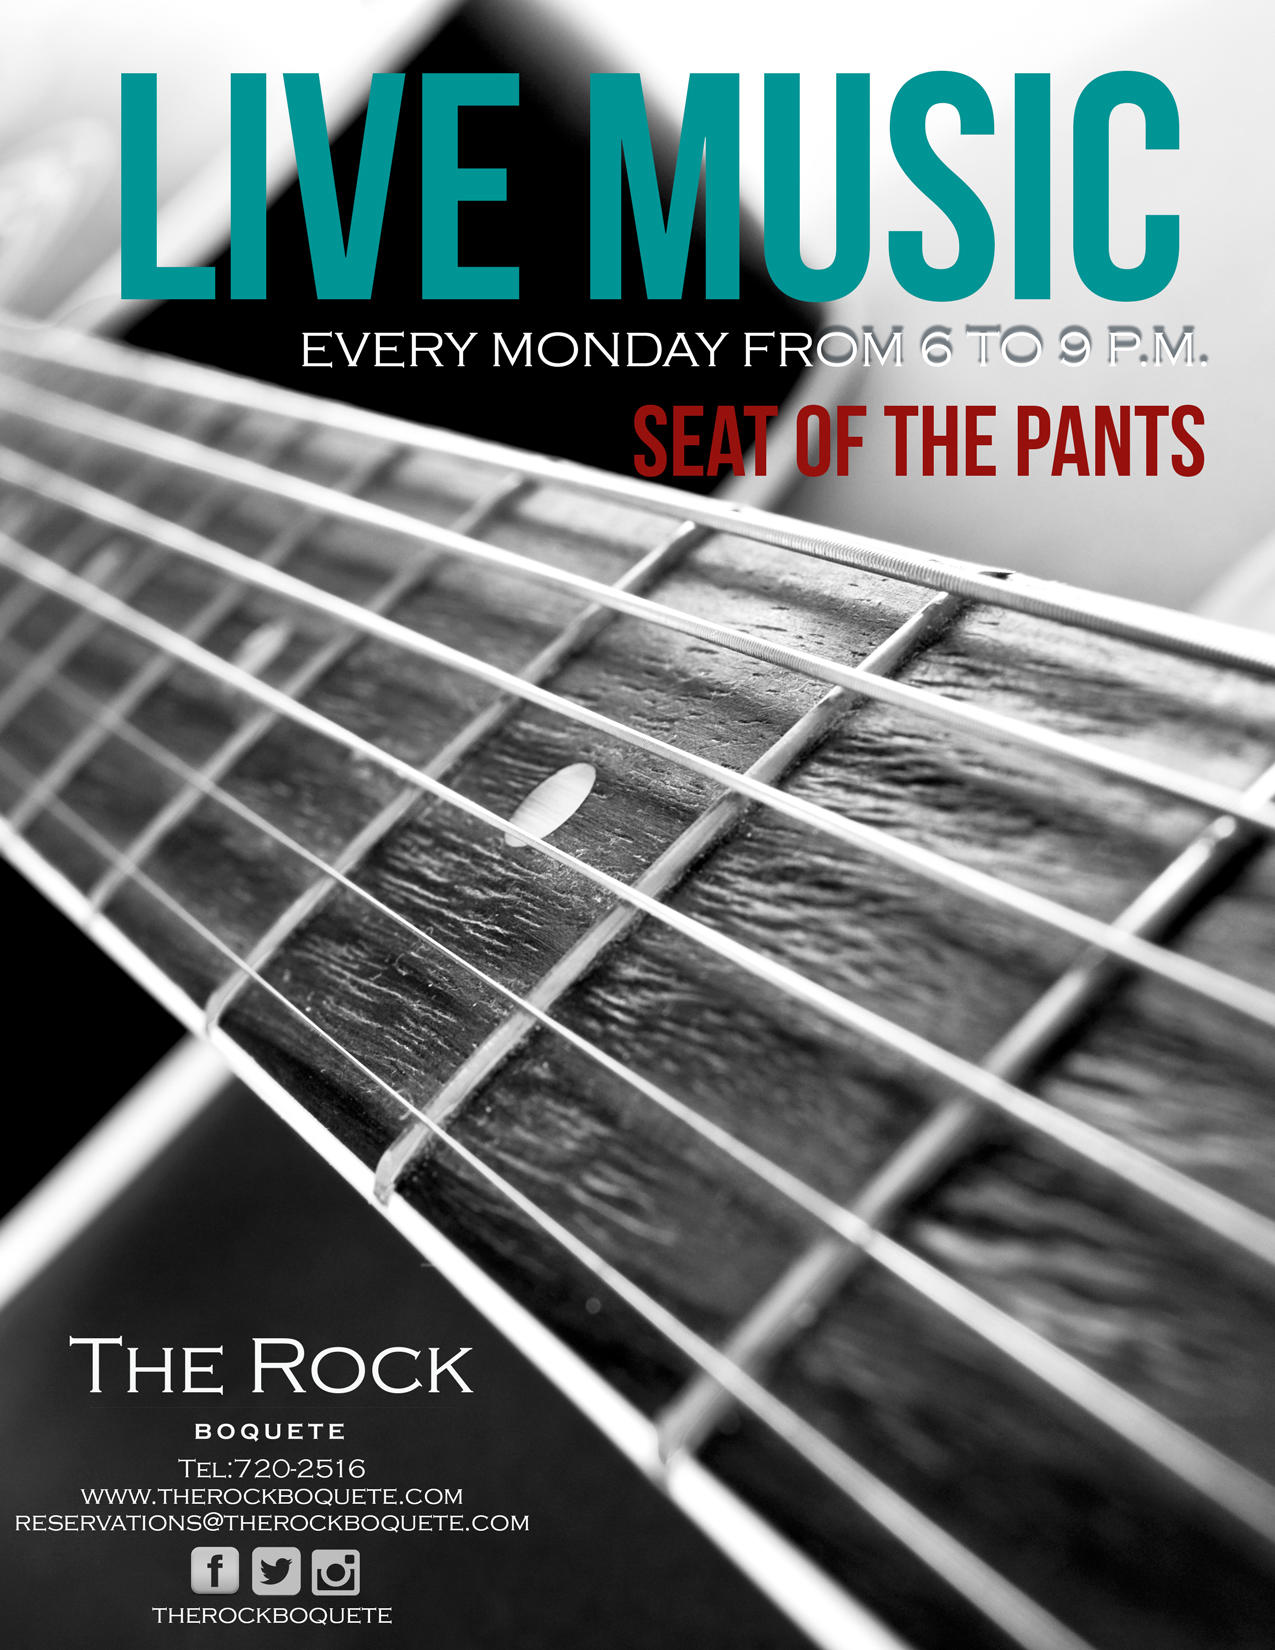 Monday Live Music at The Rock Boquete